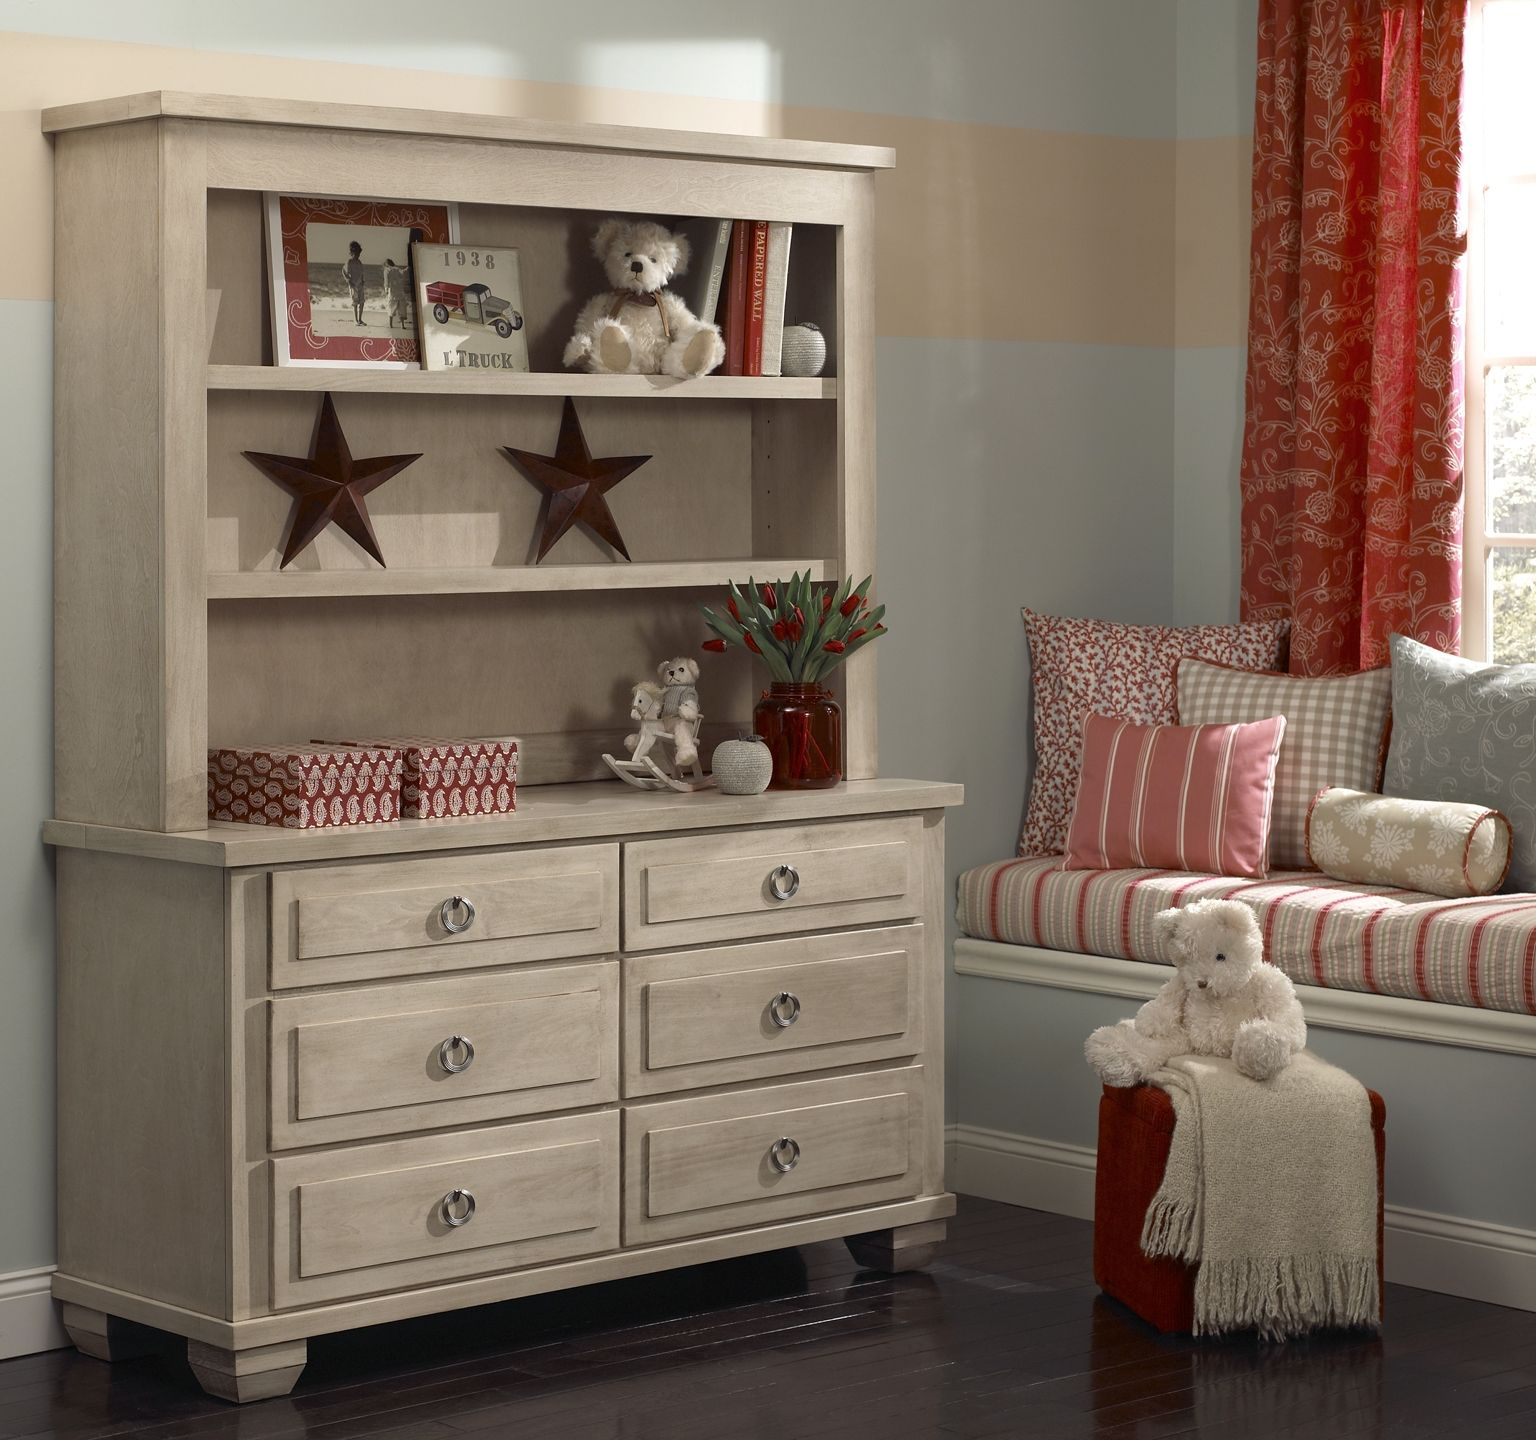 Kids Furniture · Made In America: Double Dresser With Hutch In Driftwood